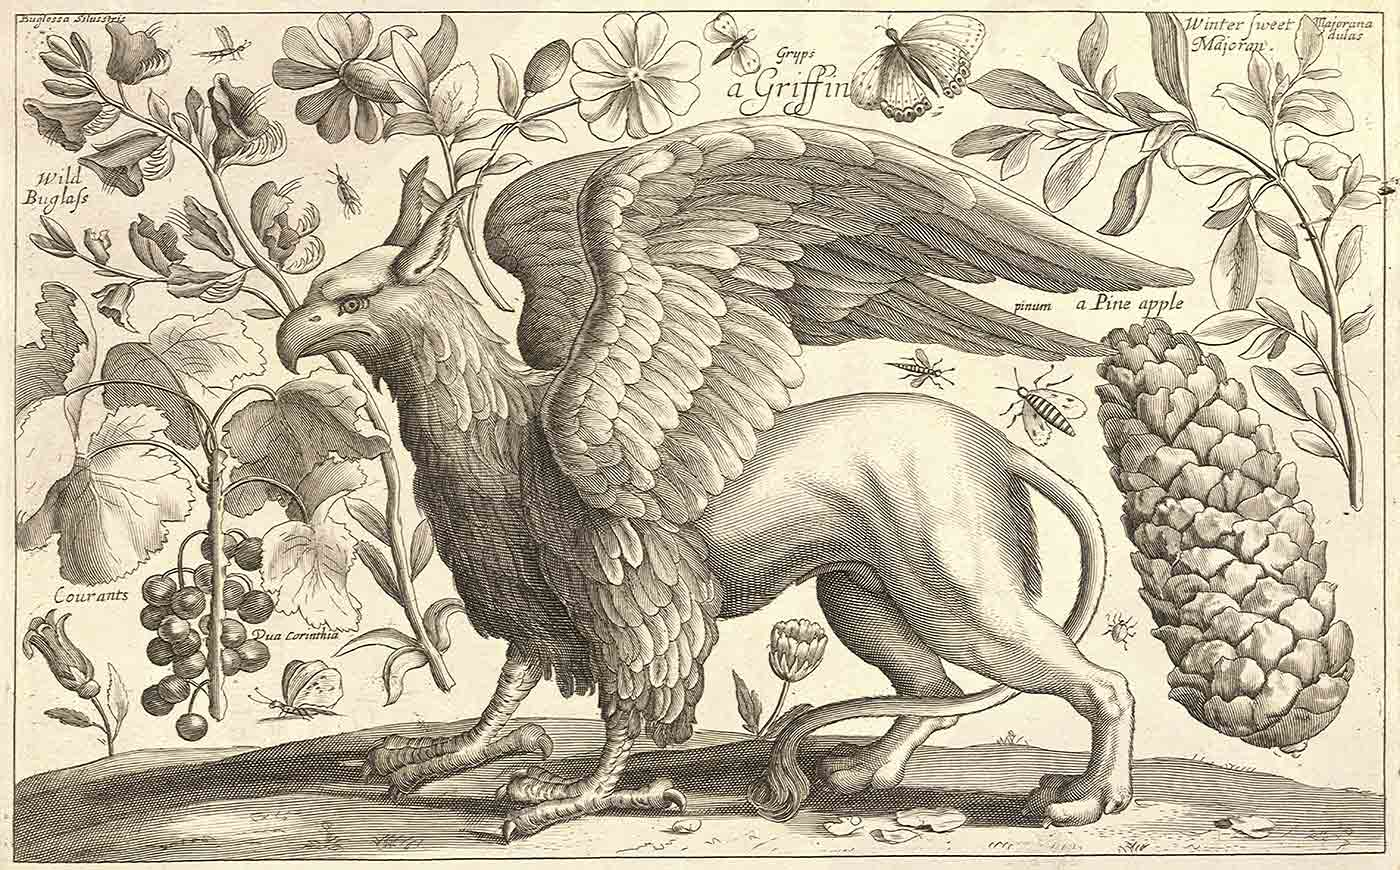 A griffin.